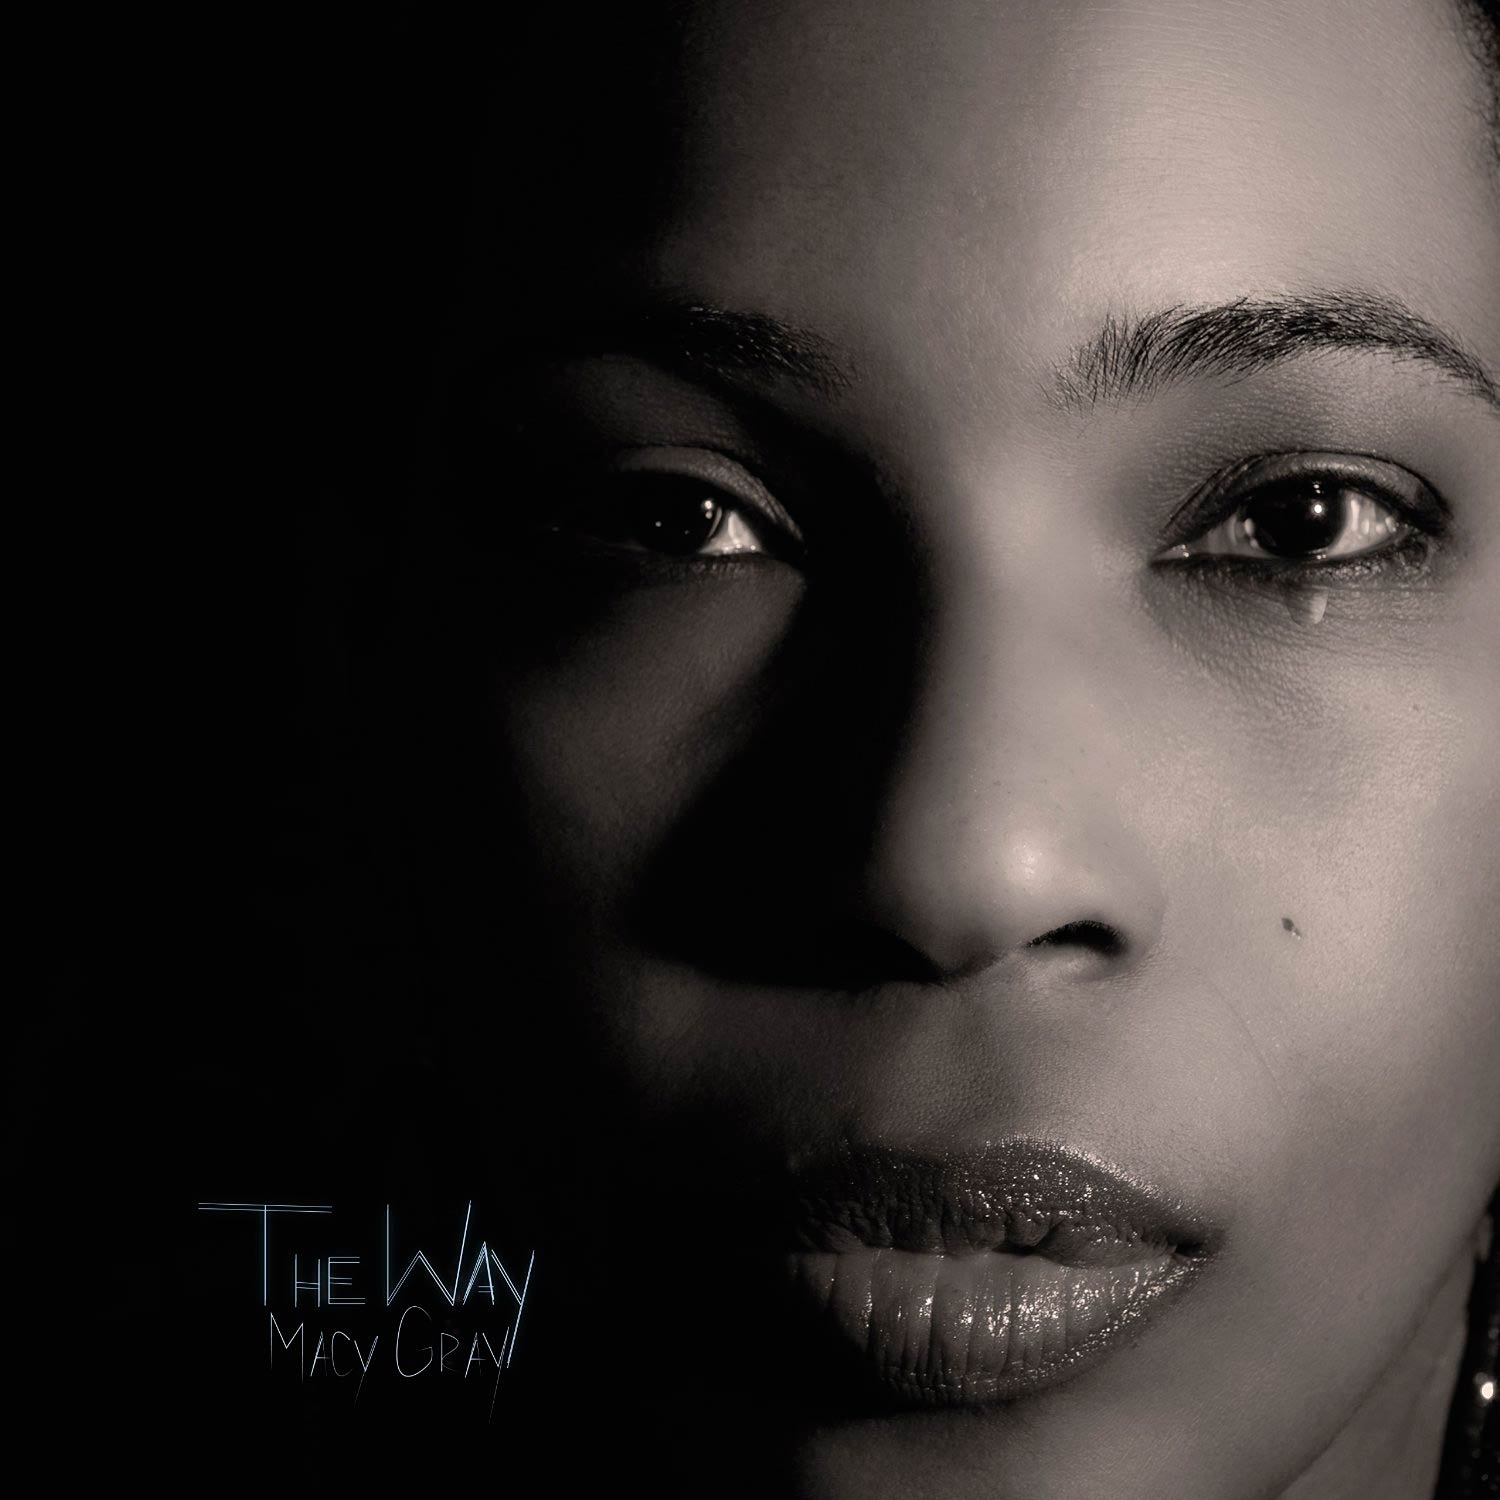 macy gay singles Macy gray has unveiled a new single, sugar daddy, off of her forthcoming new studio album ruby, her first since 2016's stripped jazz covers record the new song is co-written by meghan trainor .